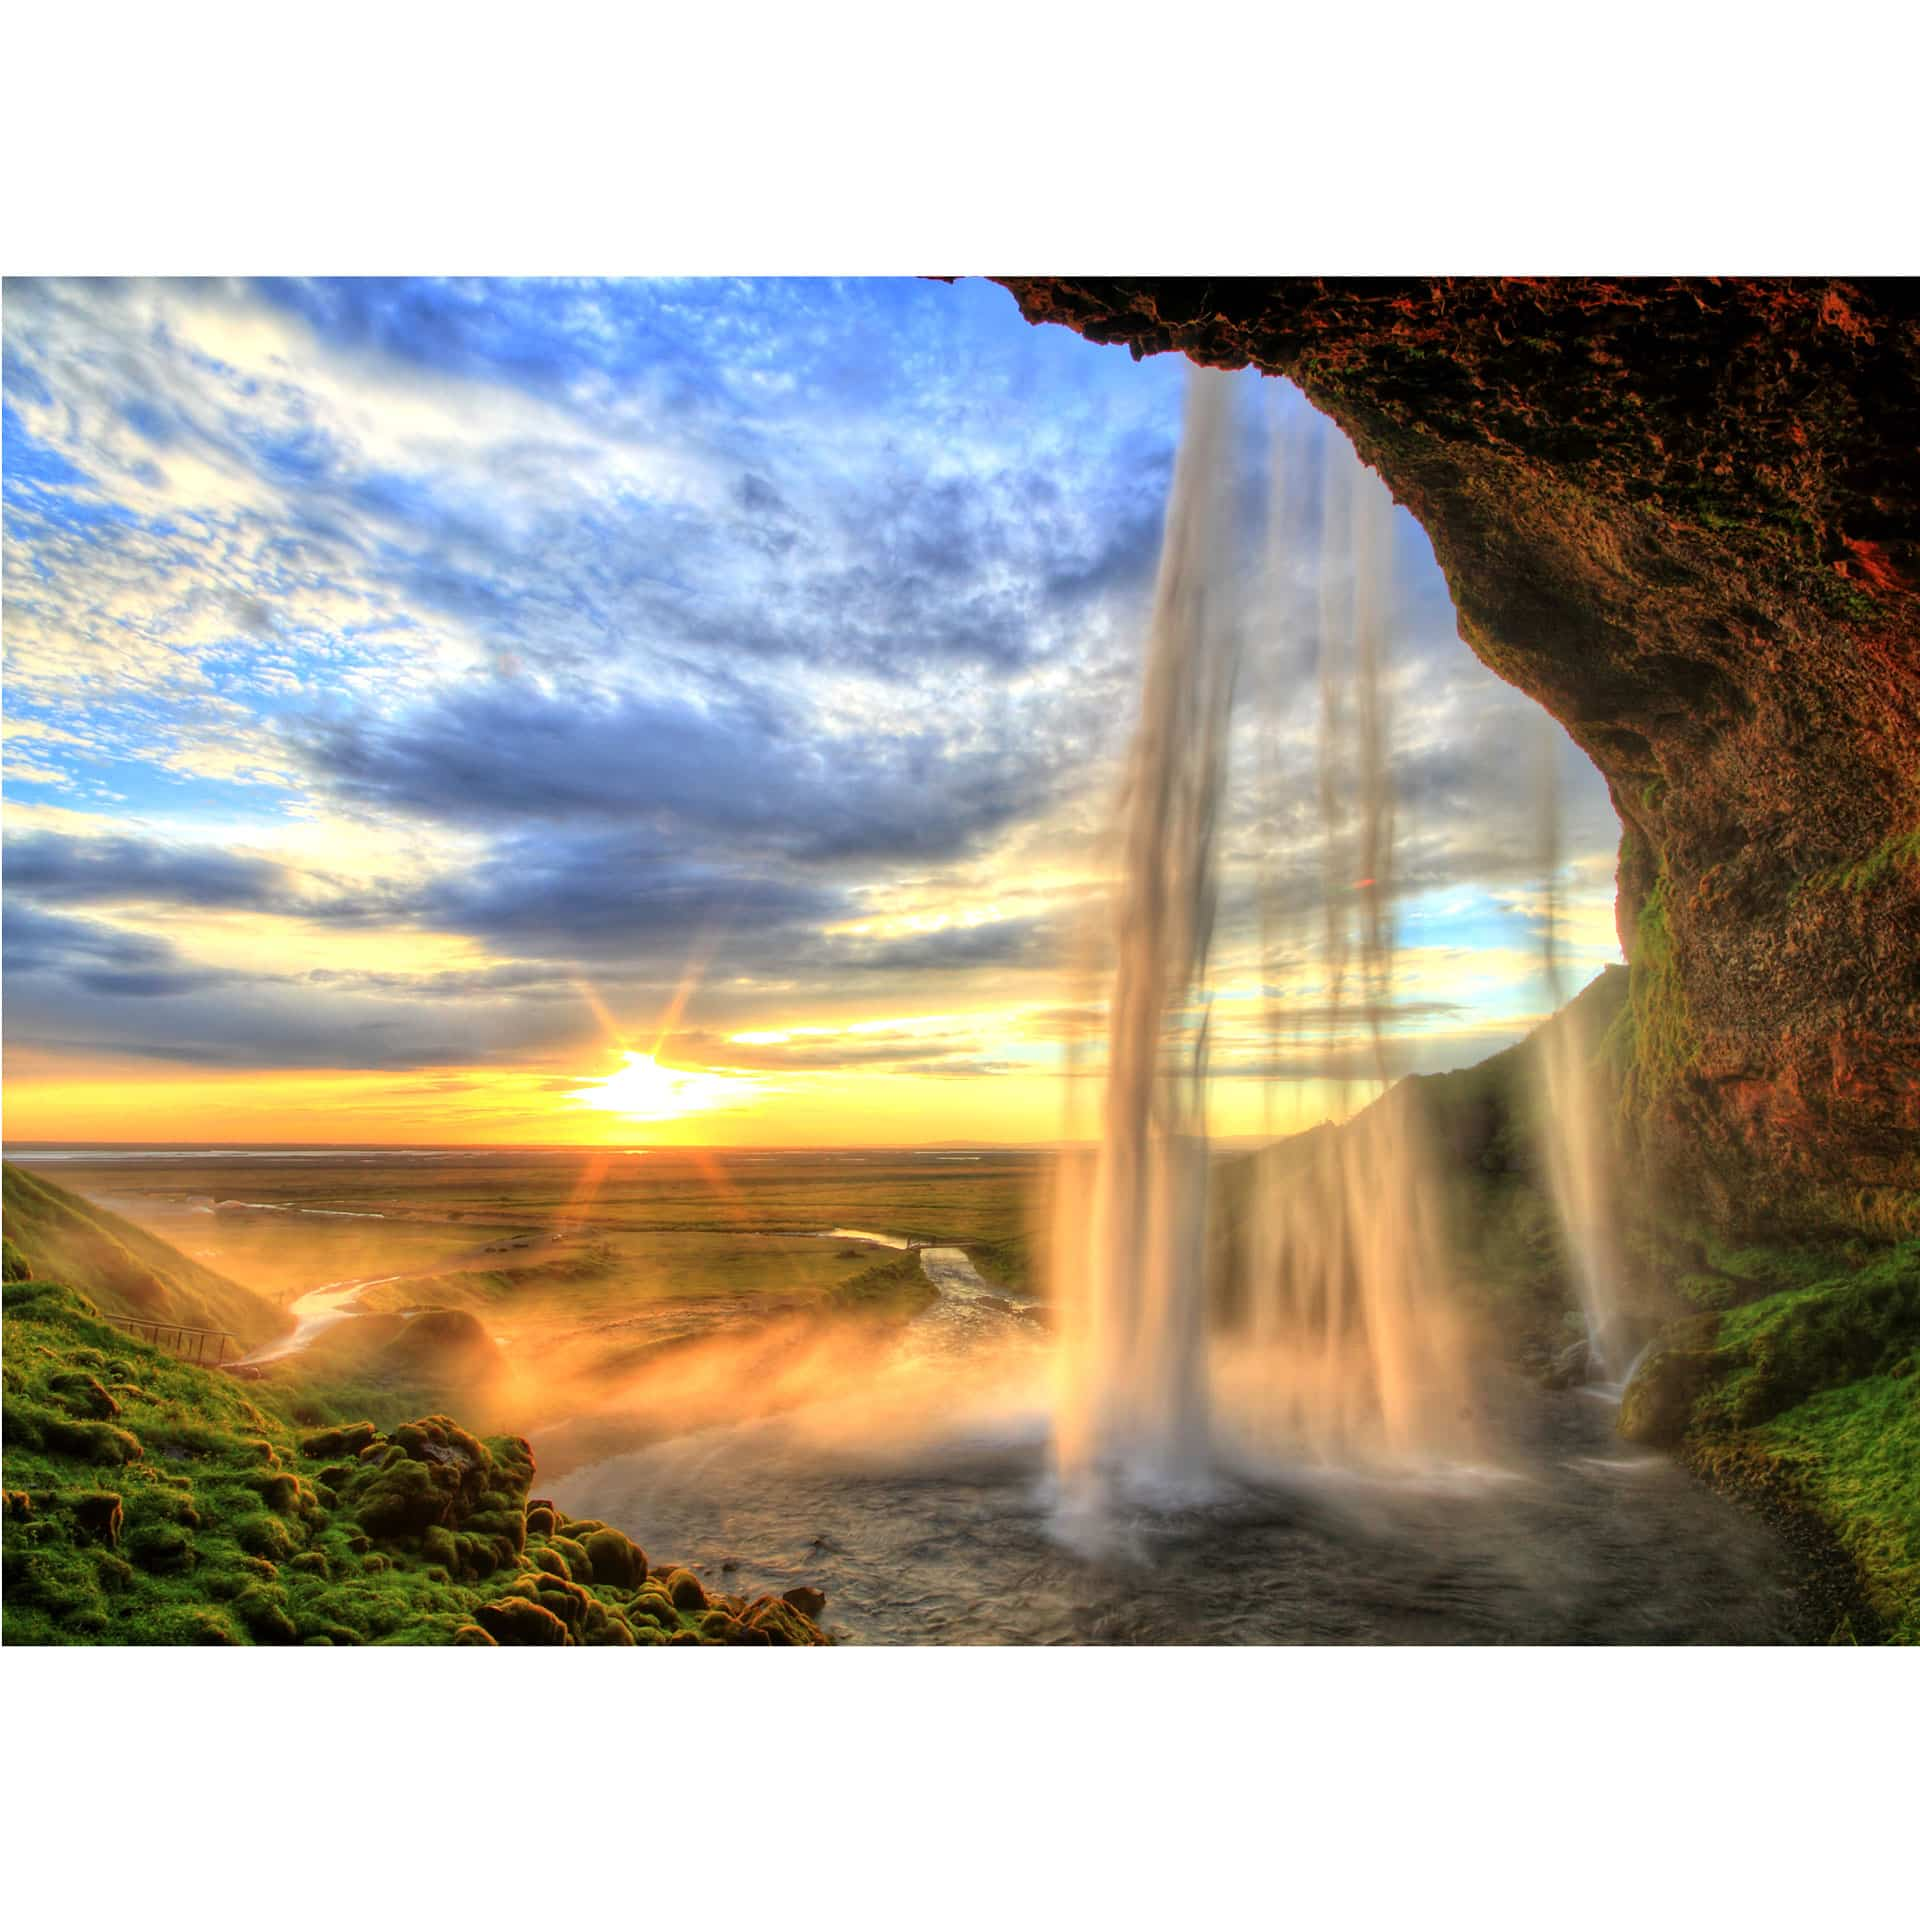 fototapete seljalandsfoss wasserfall von k l wall art wall. Black Bedroom Furniture Sets. Home Design Ideas